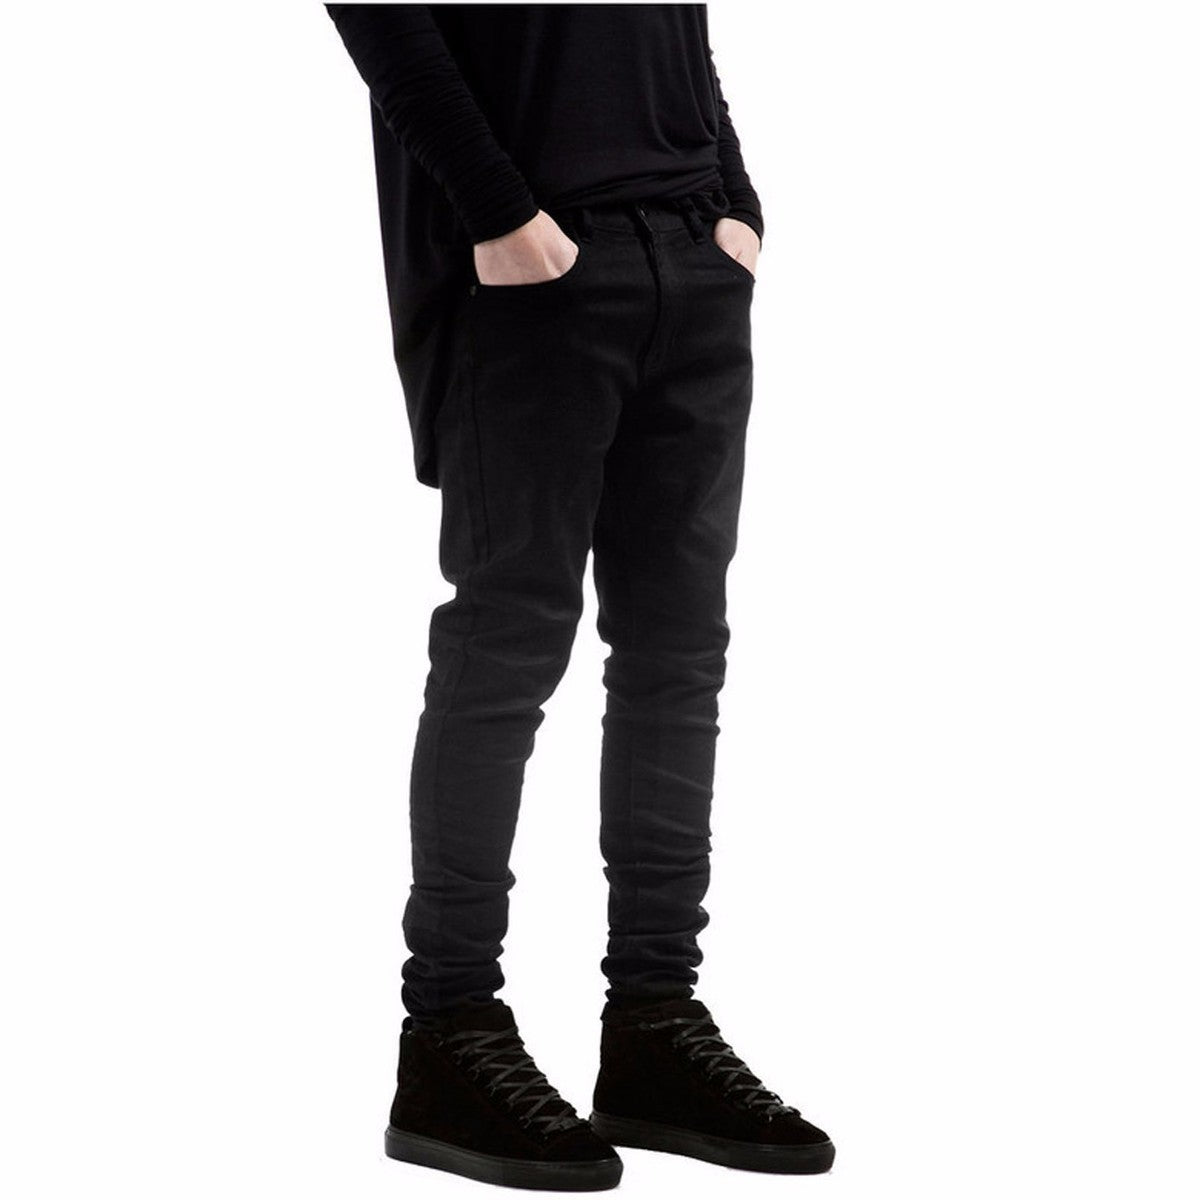 All black Slim Fit straight solid color High street biker jeans